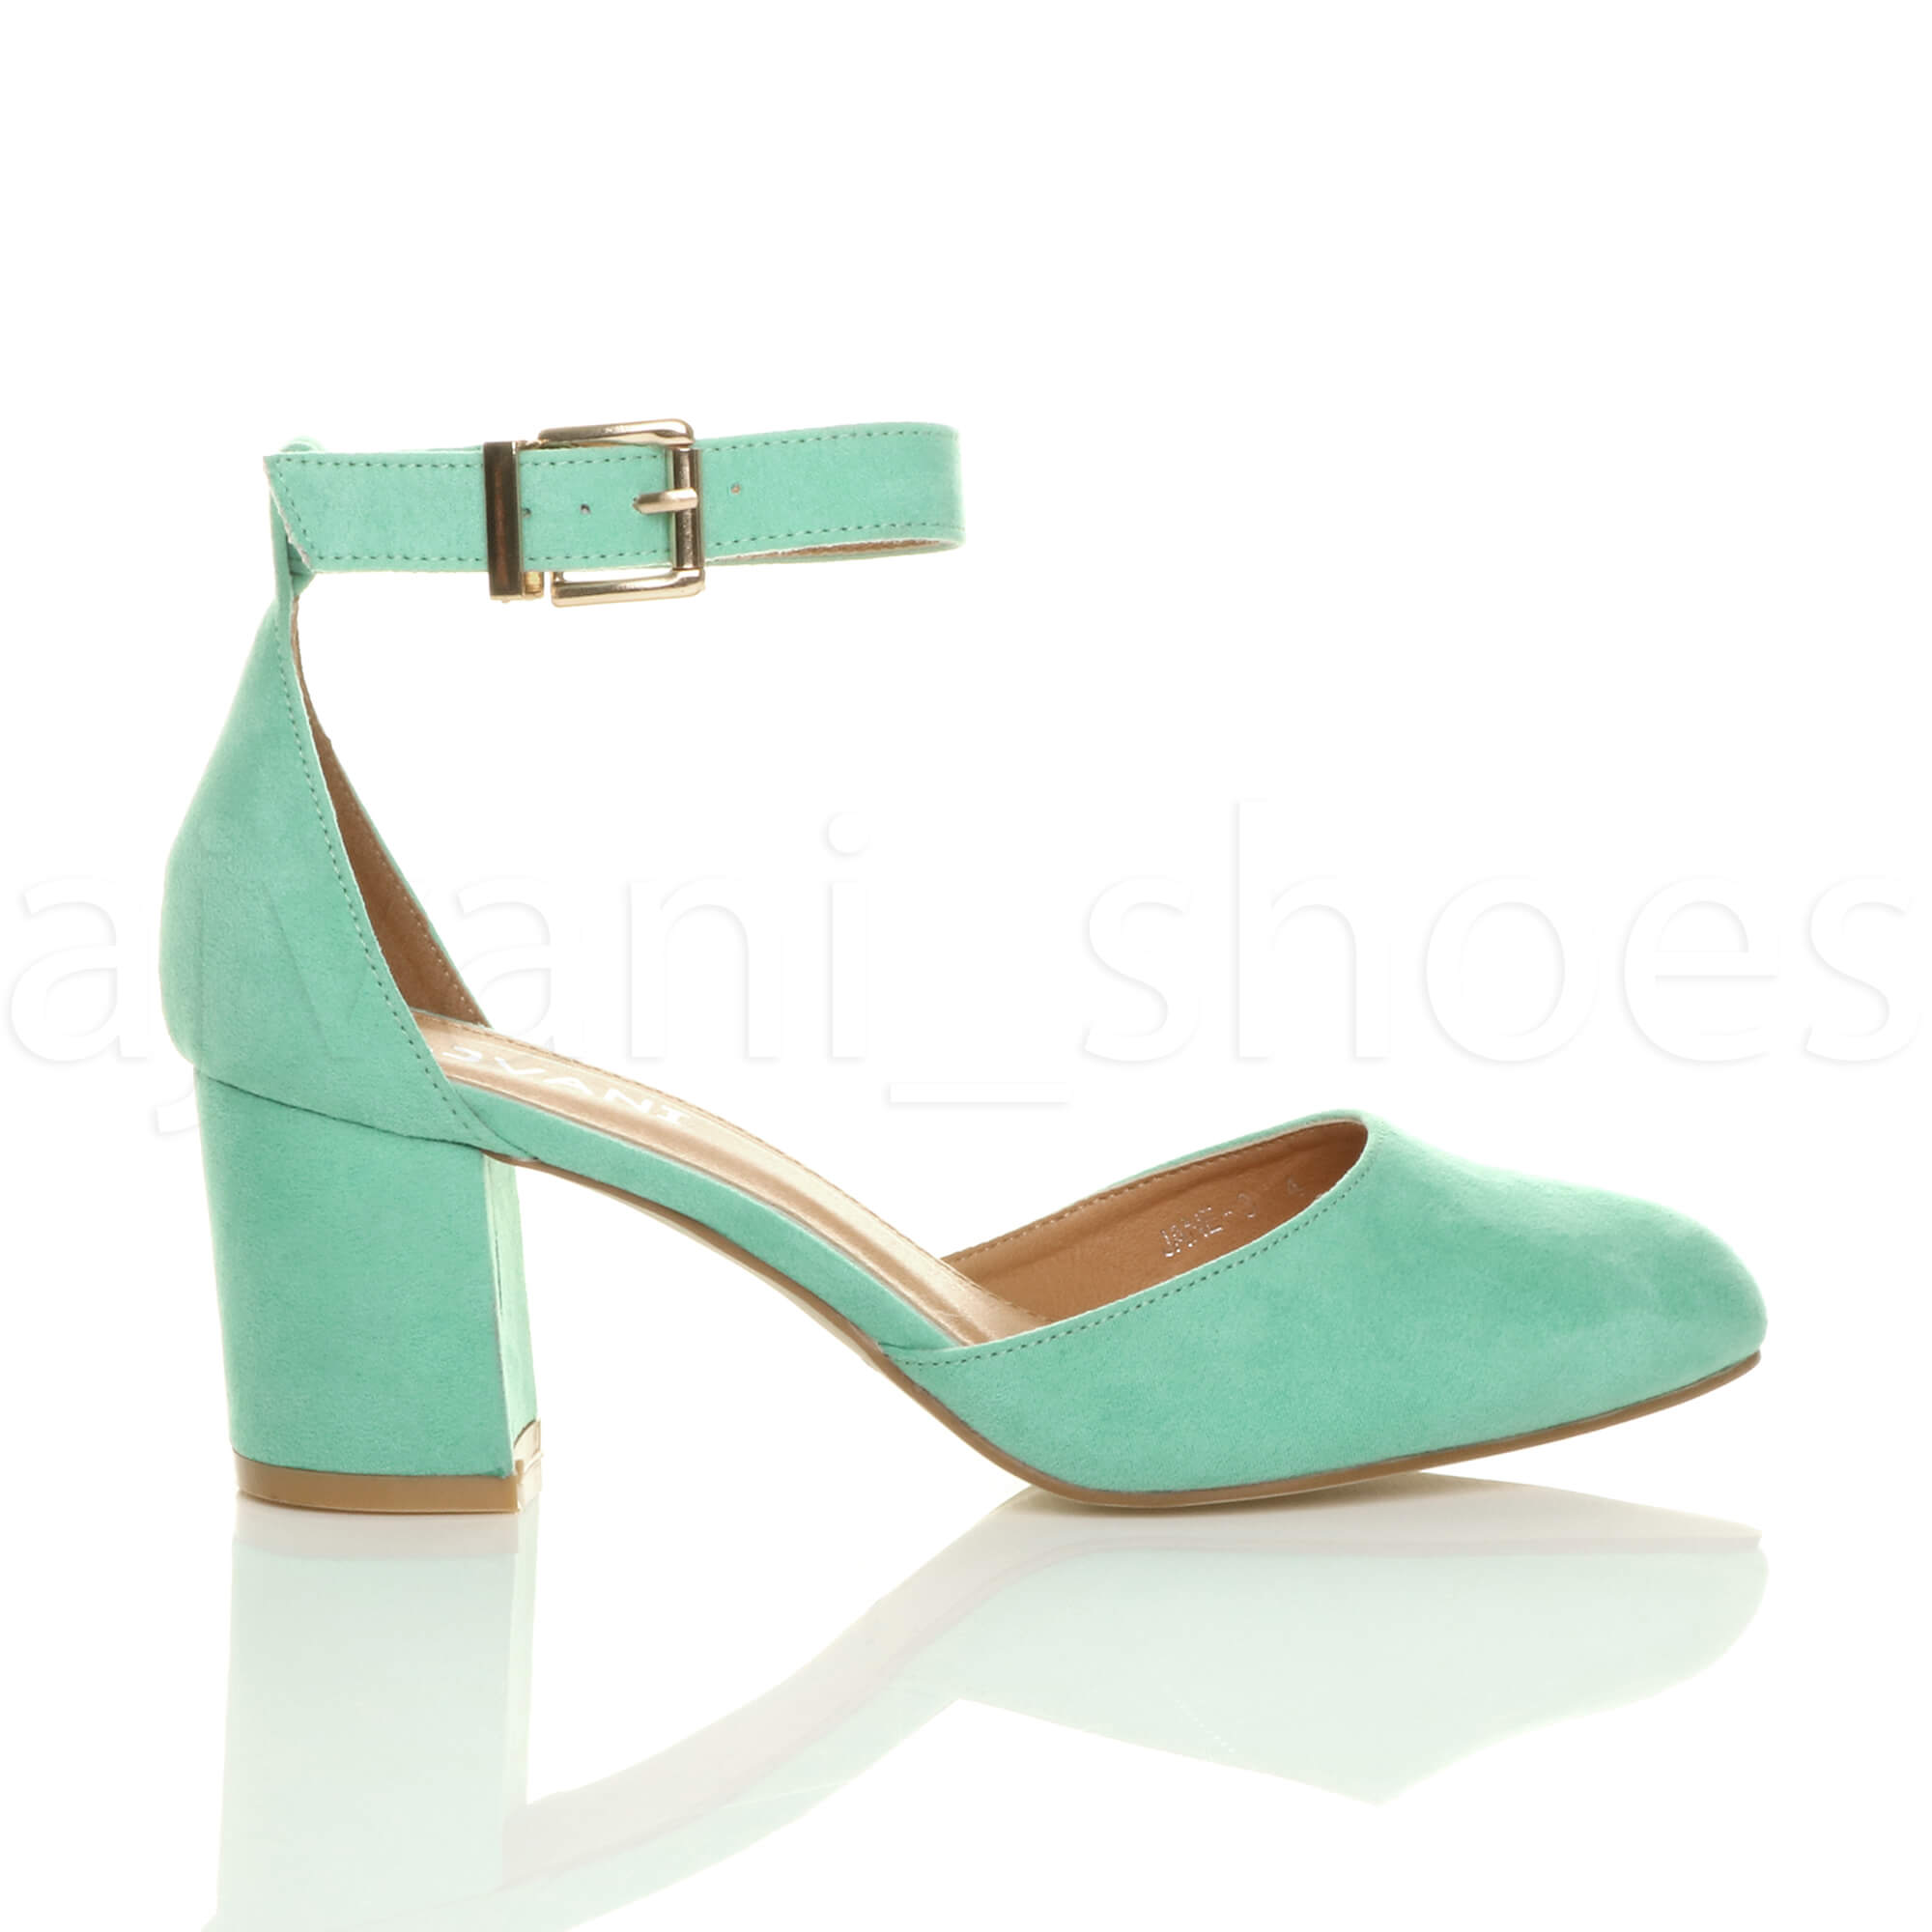 WOMENS-LADIES-LOW-MID-BLOCK-HEEL-ANKLE-STRAP-MARY-JANE-COURT-SHOES-SANDALS-SIZE thumbnail 75